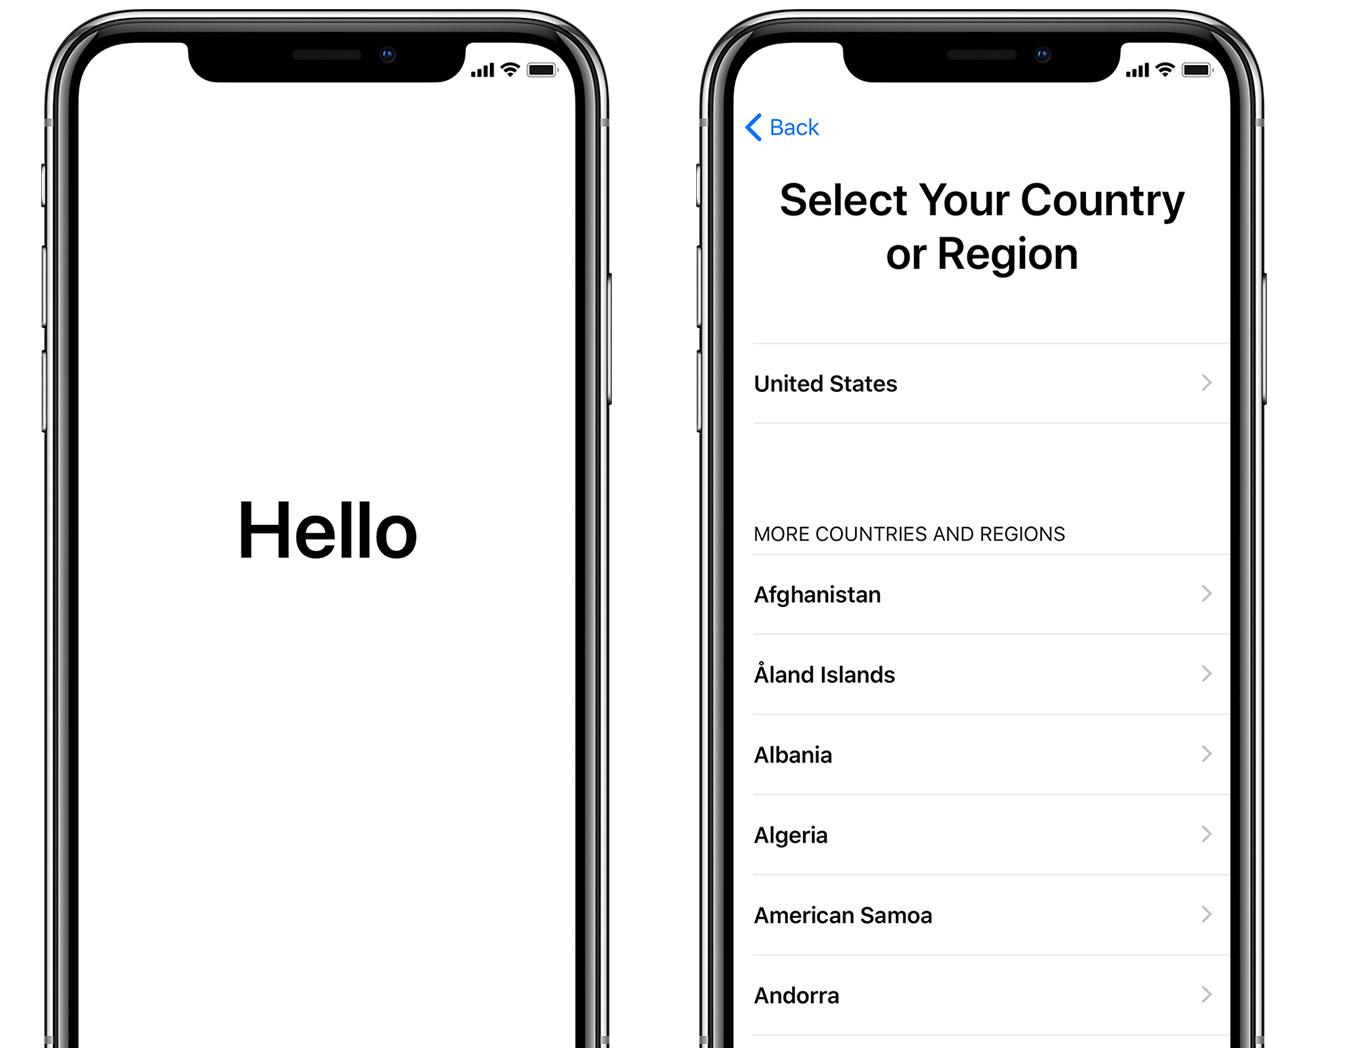 «Hei»-skjermen og skjermbildet for Velg land eller region på iPhone